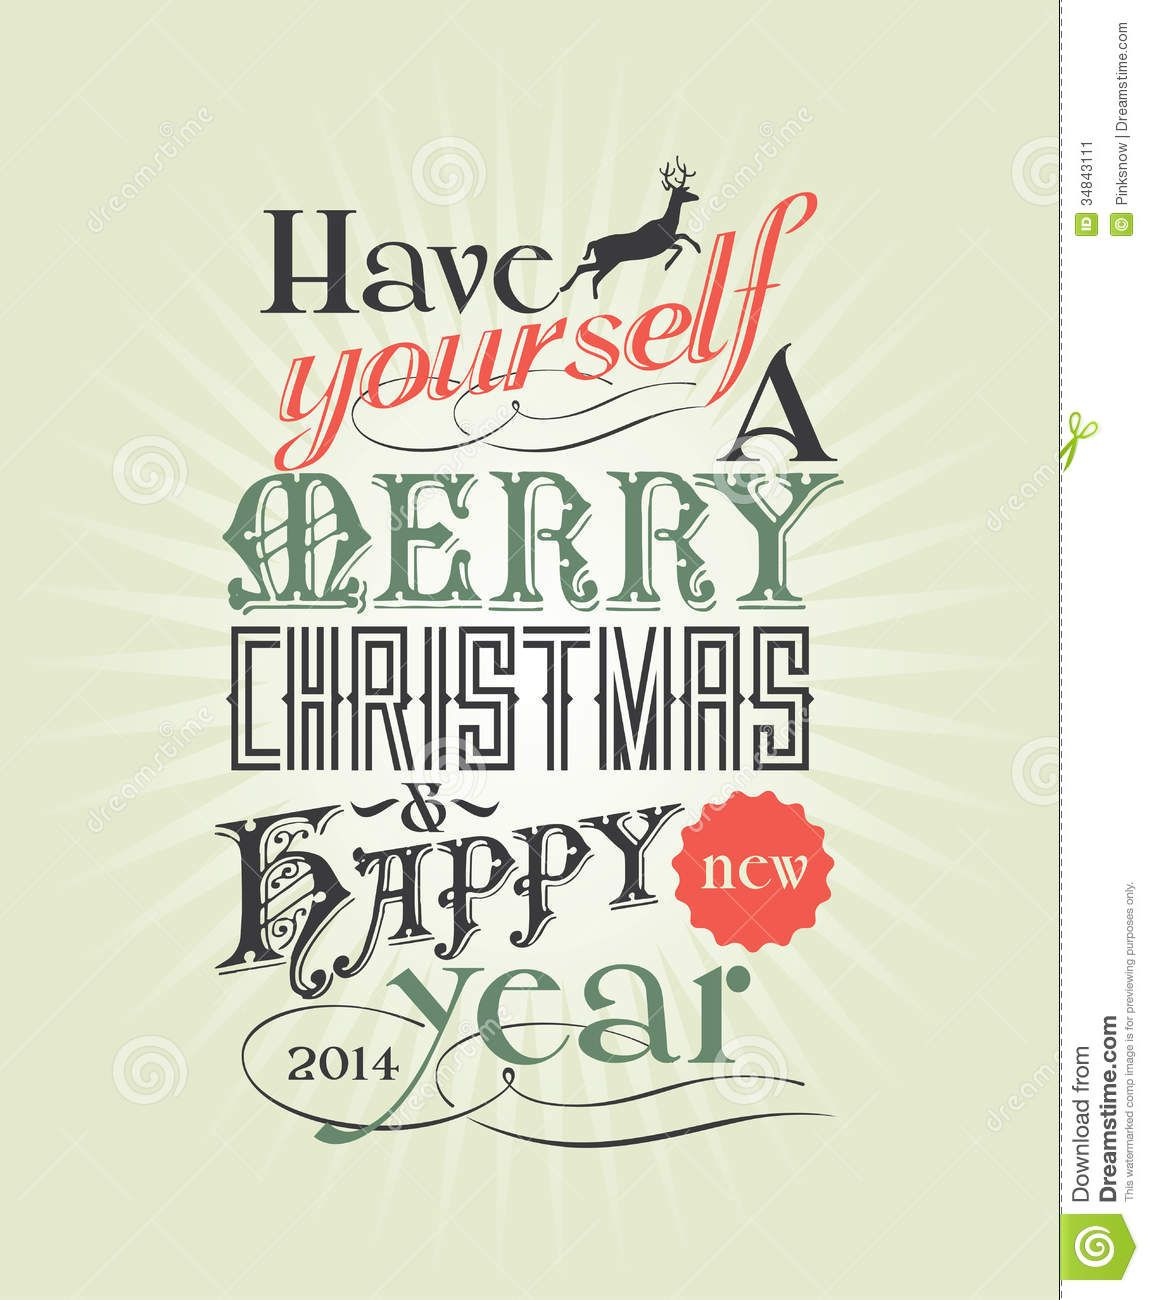 Christmas Card - Download From Over 54 Million High Quality Stock ...